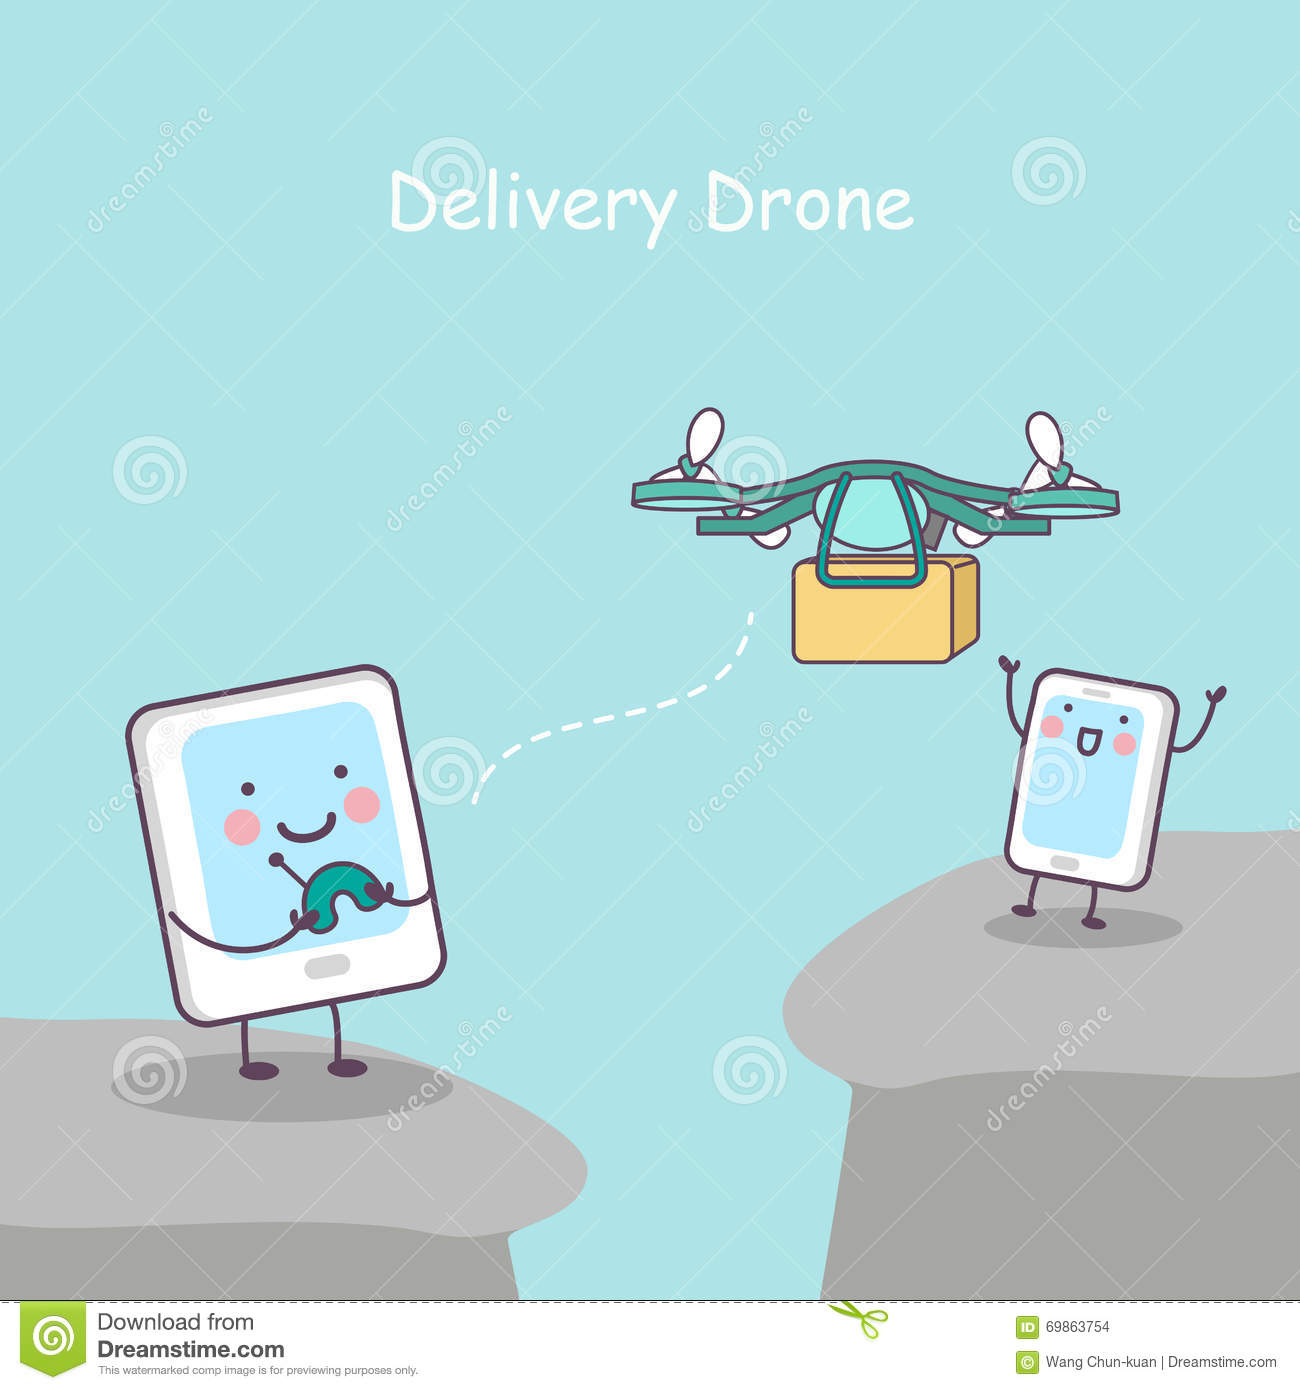 wireless remote control helicopter with Stock Illustration Smartphone Tablet Delivery Drone Cute Cartoon Pc Smart Phone Great Your Design Image69863754 on Watch further Royalty Free Stock Photo Camera Aerial Photography Sky Video Photo Productions Image35324155 as well Innovation Photography Concept Silhouette Drone Flying 415195669 further Capstone as well 36485.